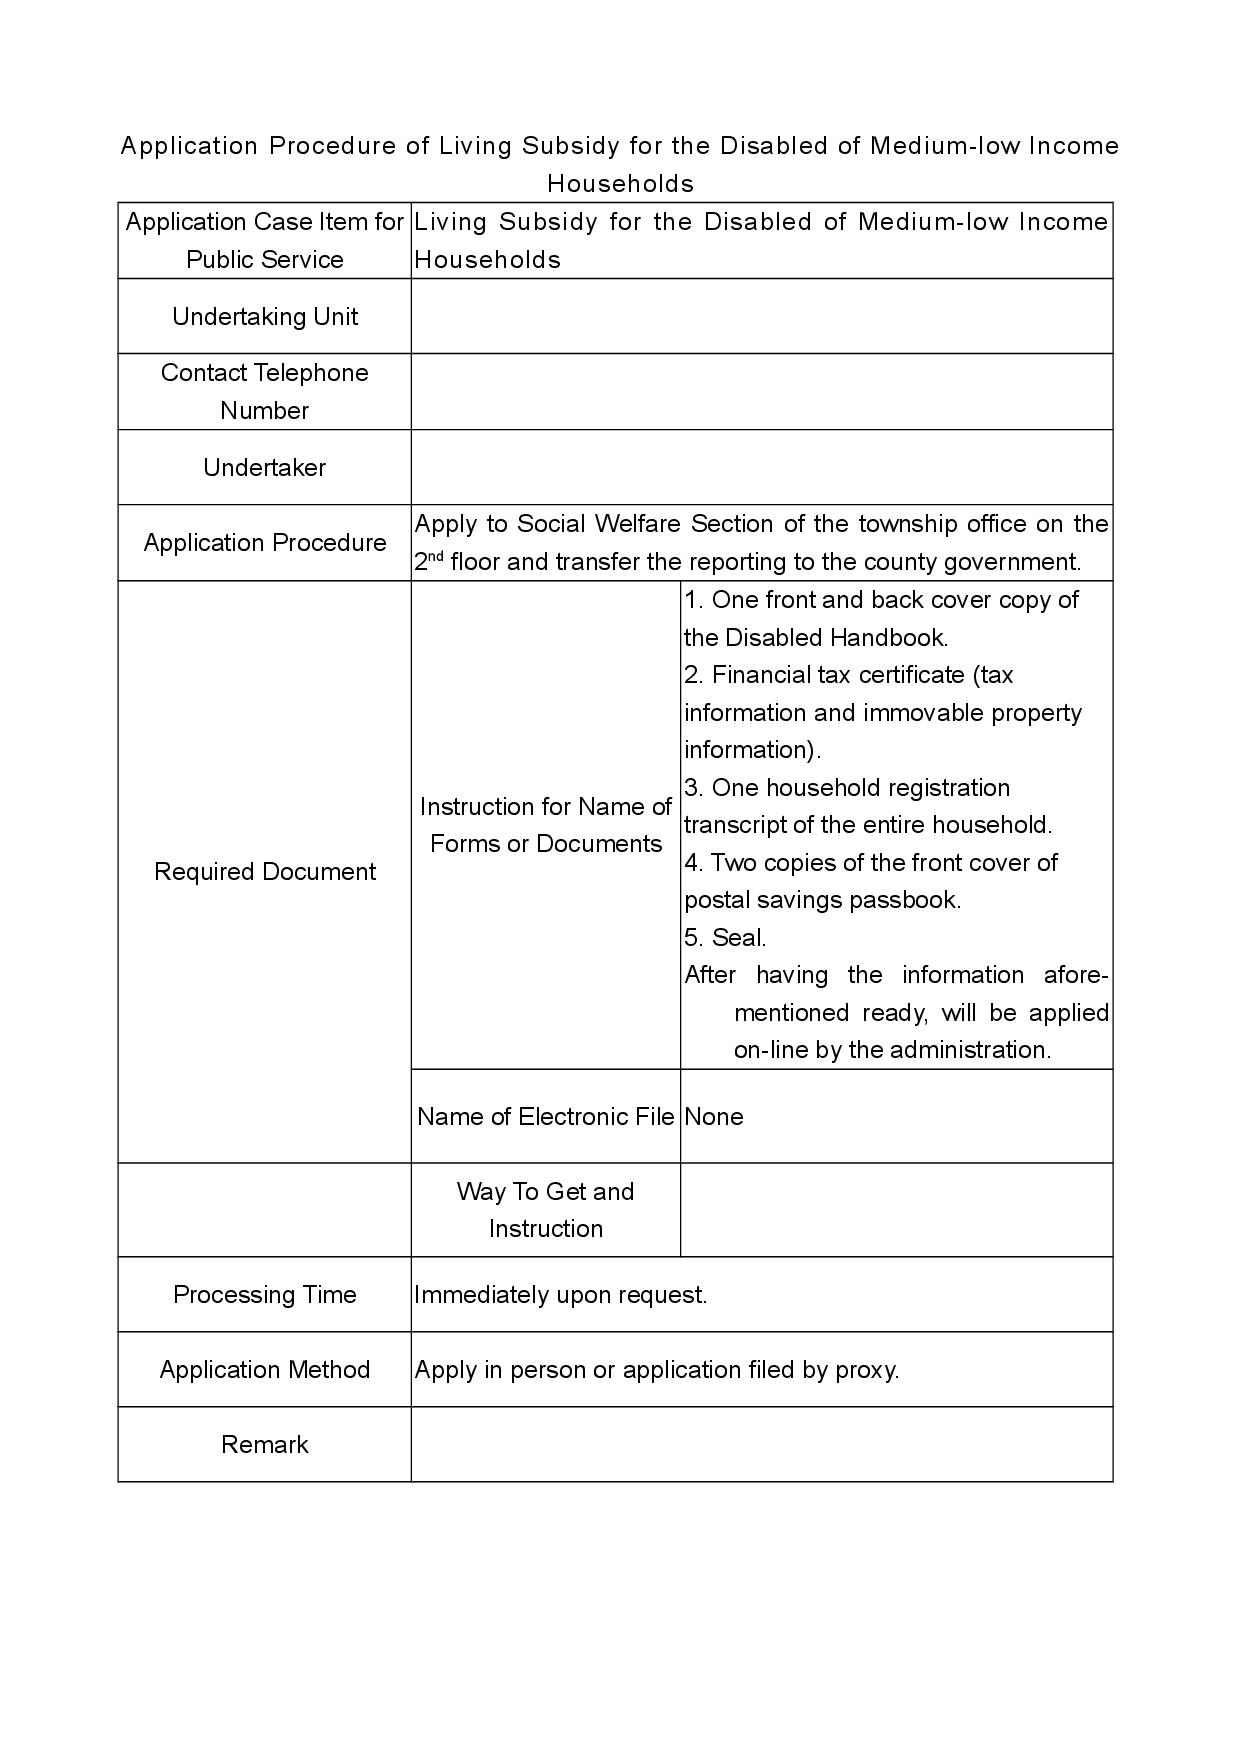 Application Procedure of Living Subsidy for the Disabled of Medium-low Income Households